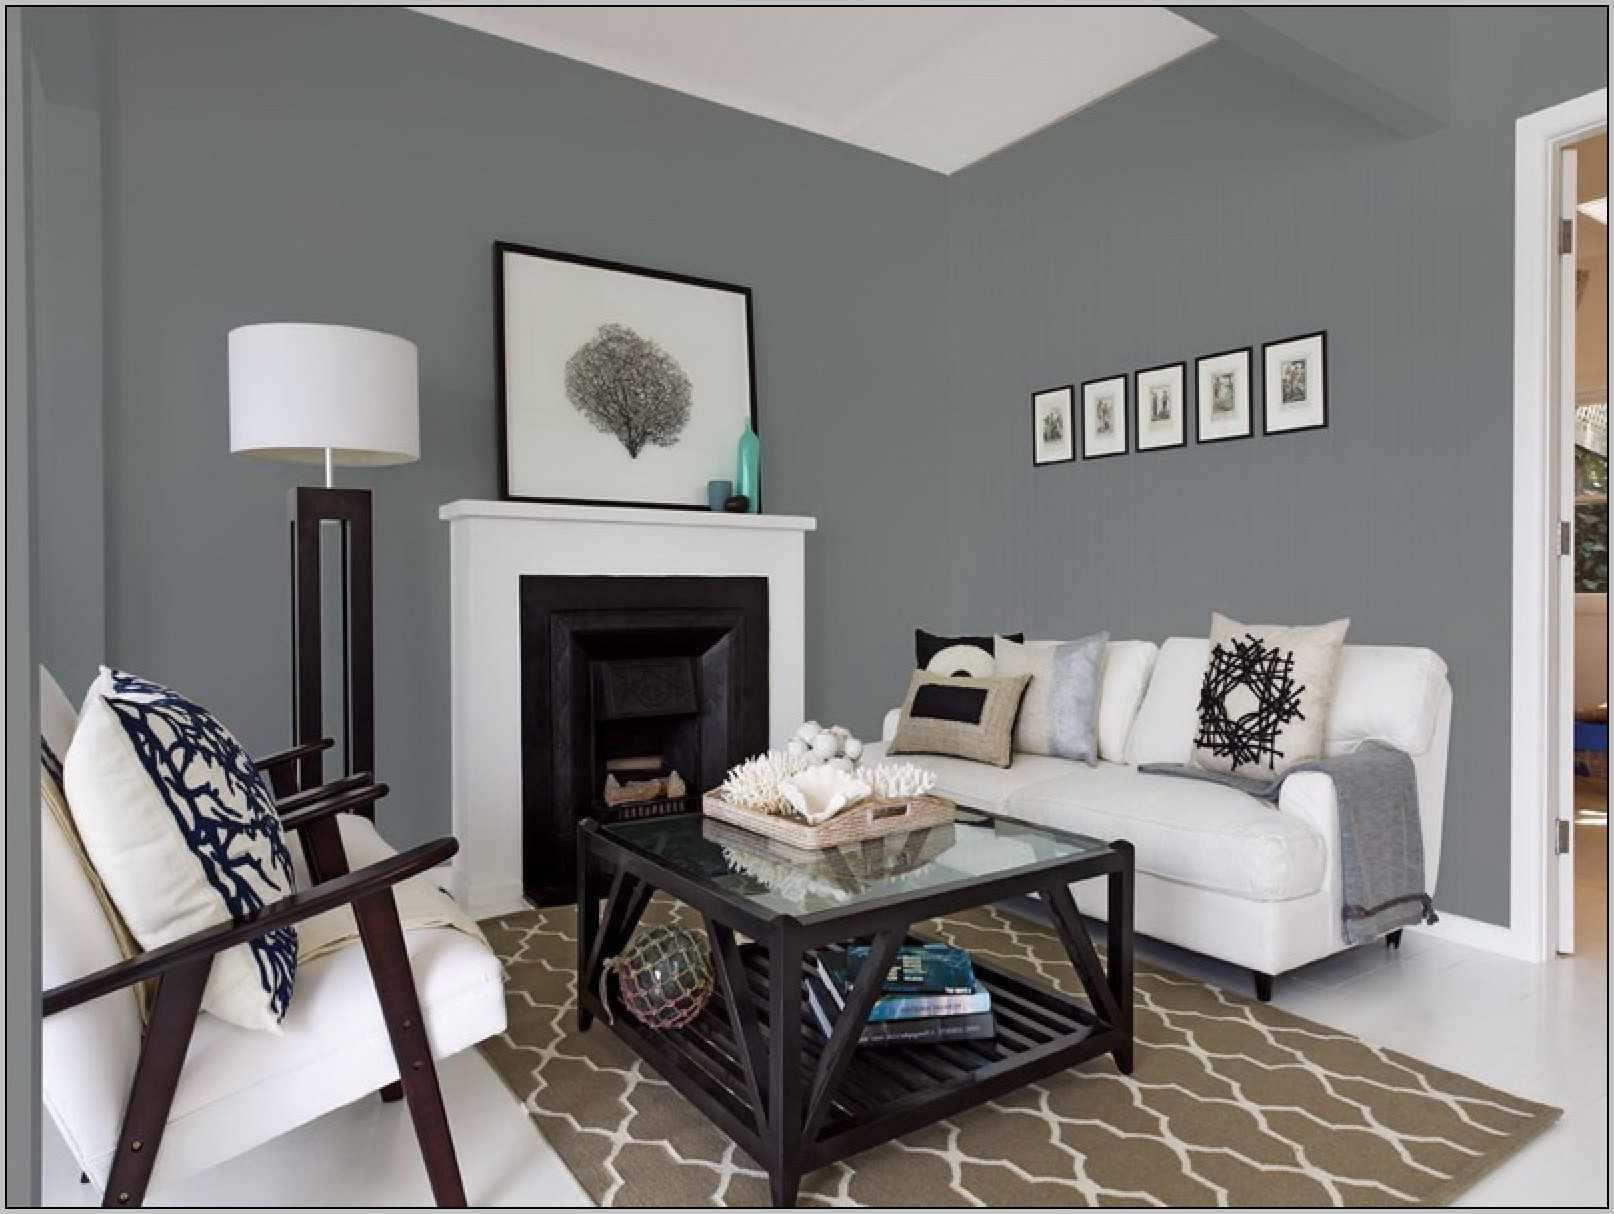 Pictures for Living Room Wall Fresh Decorating with Gray and Brown Bination Walls Furniture 2018